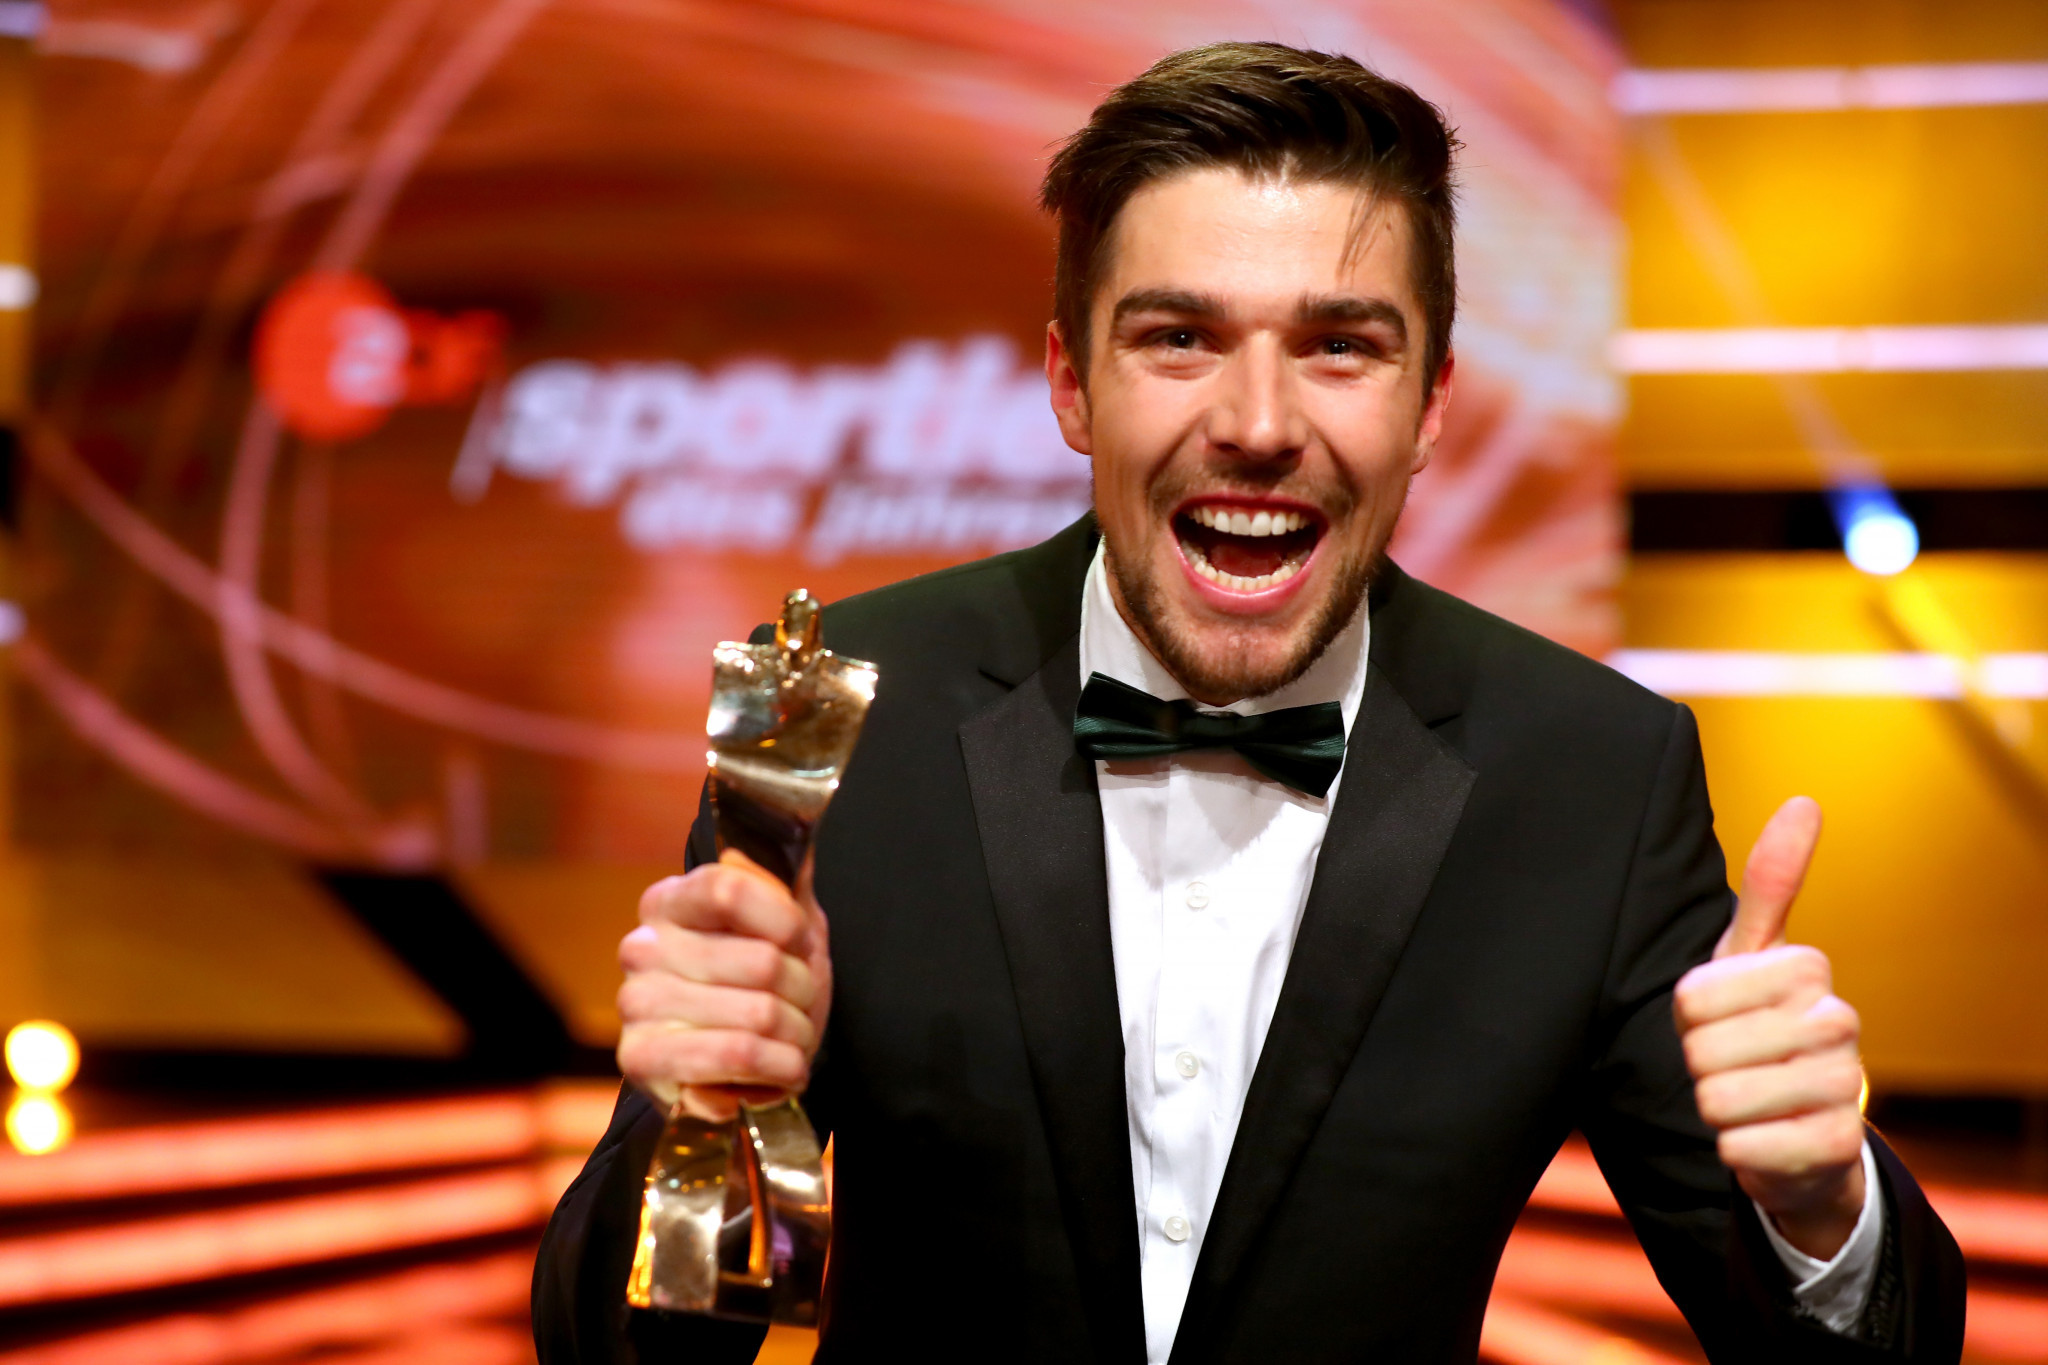 Rydzek named male athlete of the year by German media